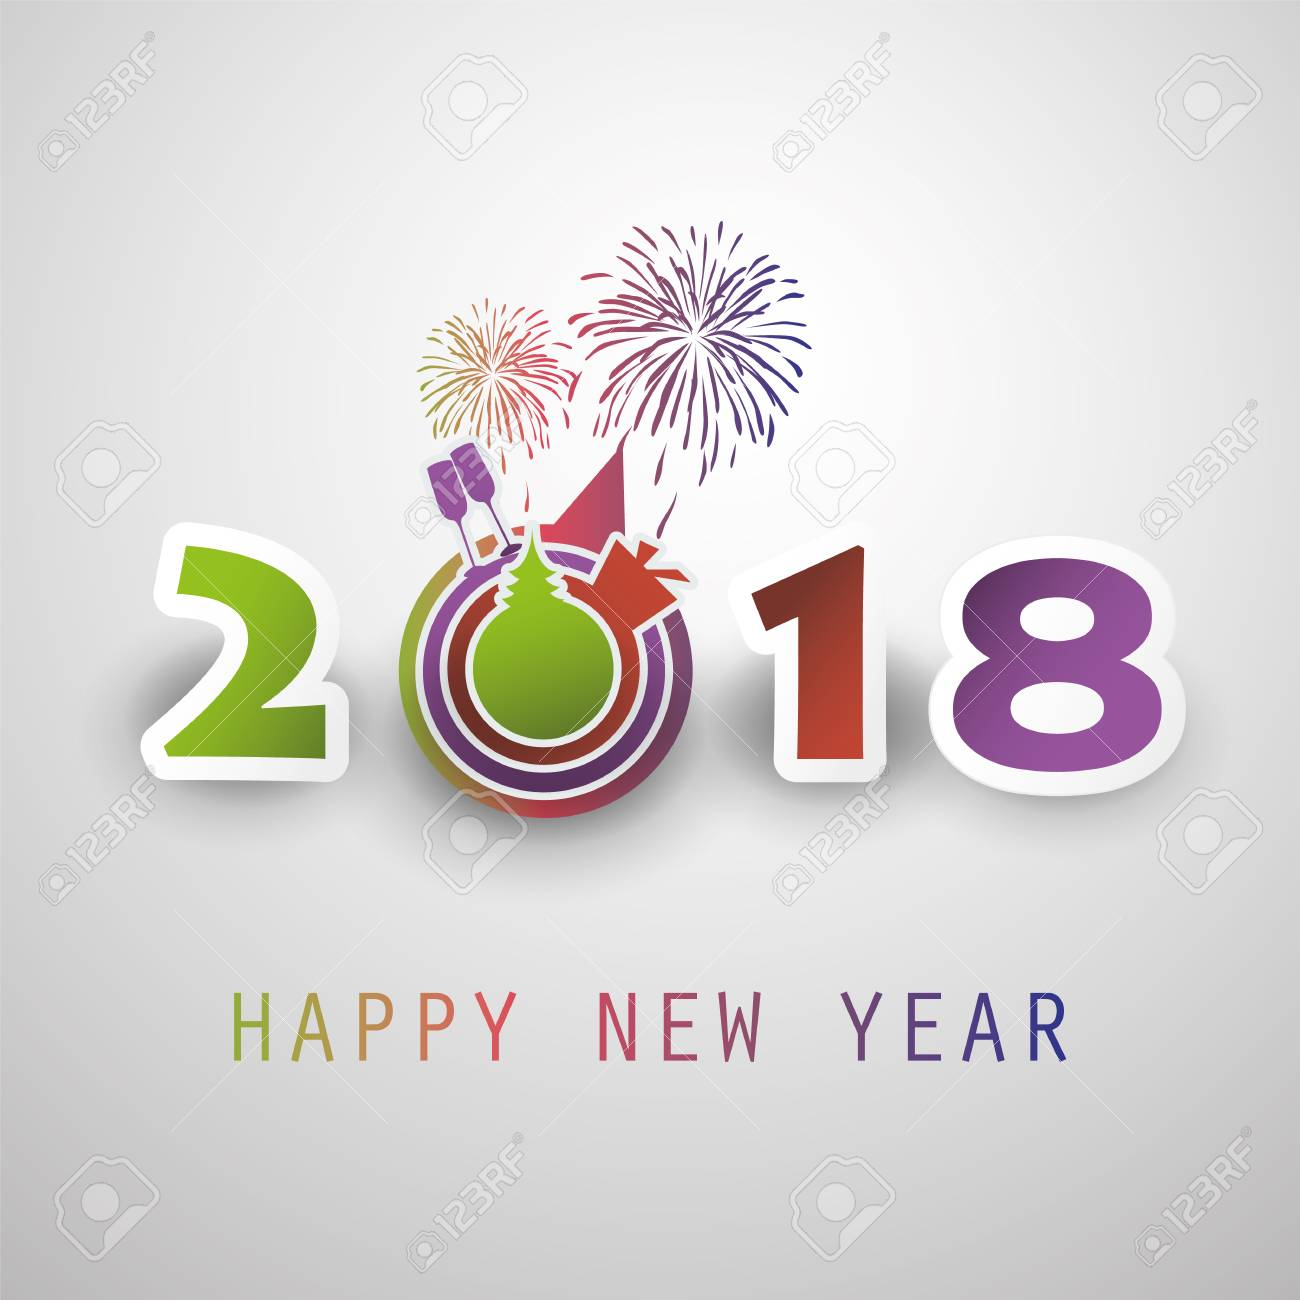 best wishes abstract modern style happy 2018 new year greeting card or background creative